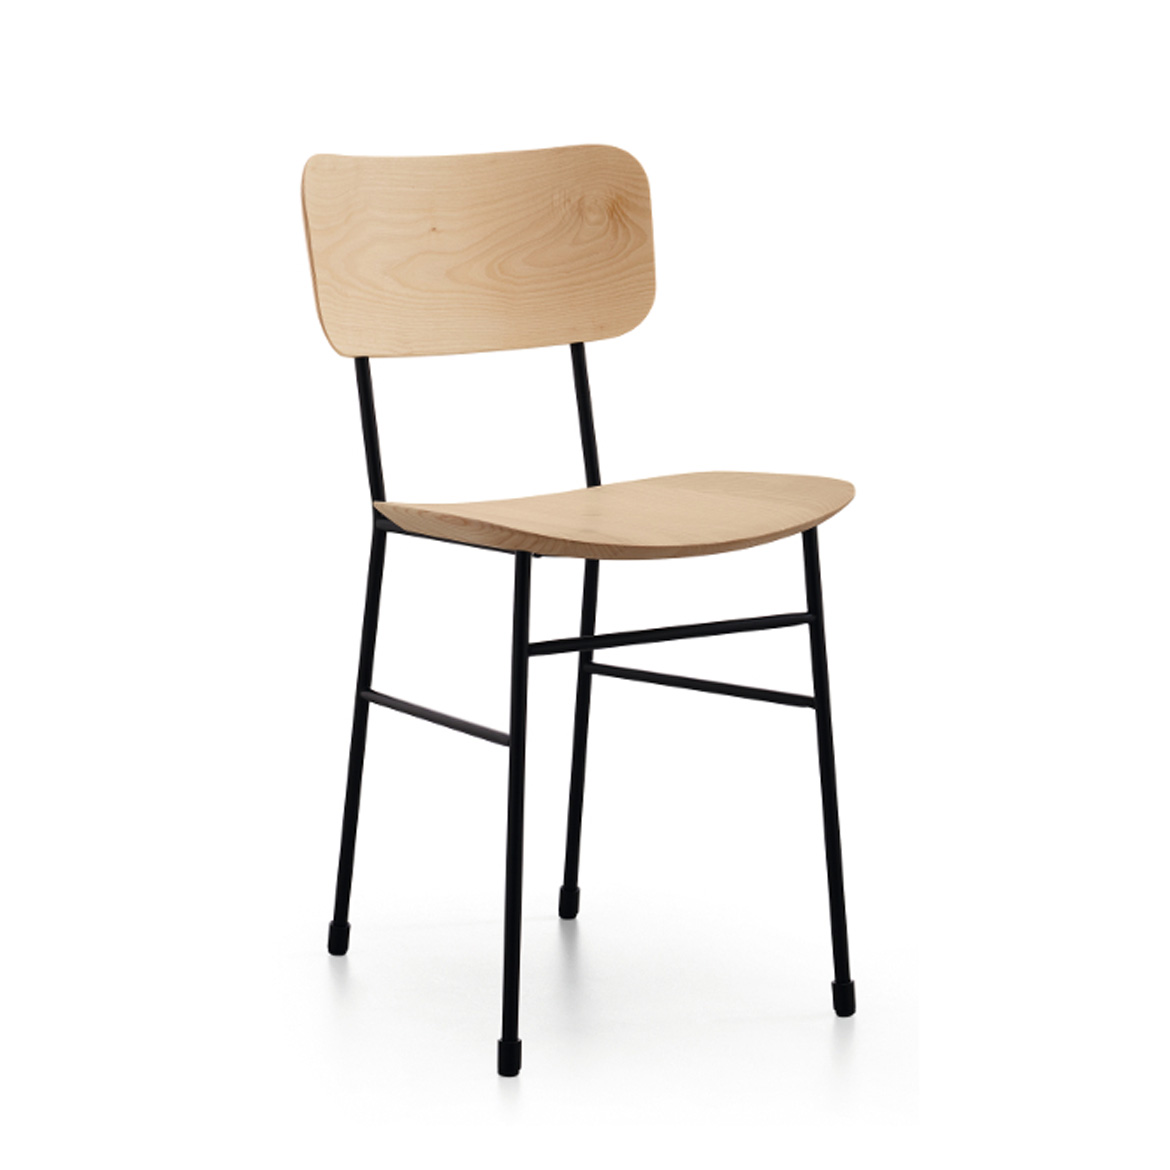 Chair with four legs base in lascquered steel, pink gold or black nickel. Seat and backrest in wood or Fenix.